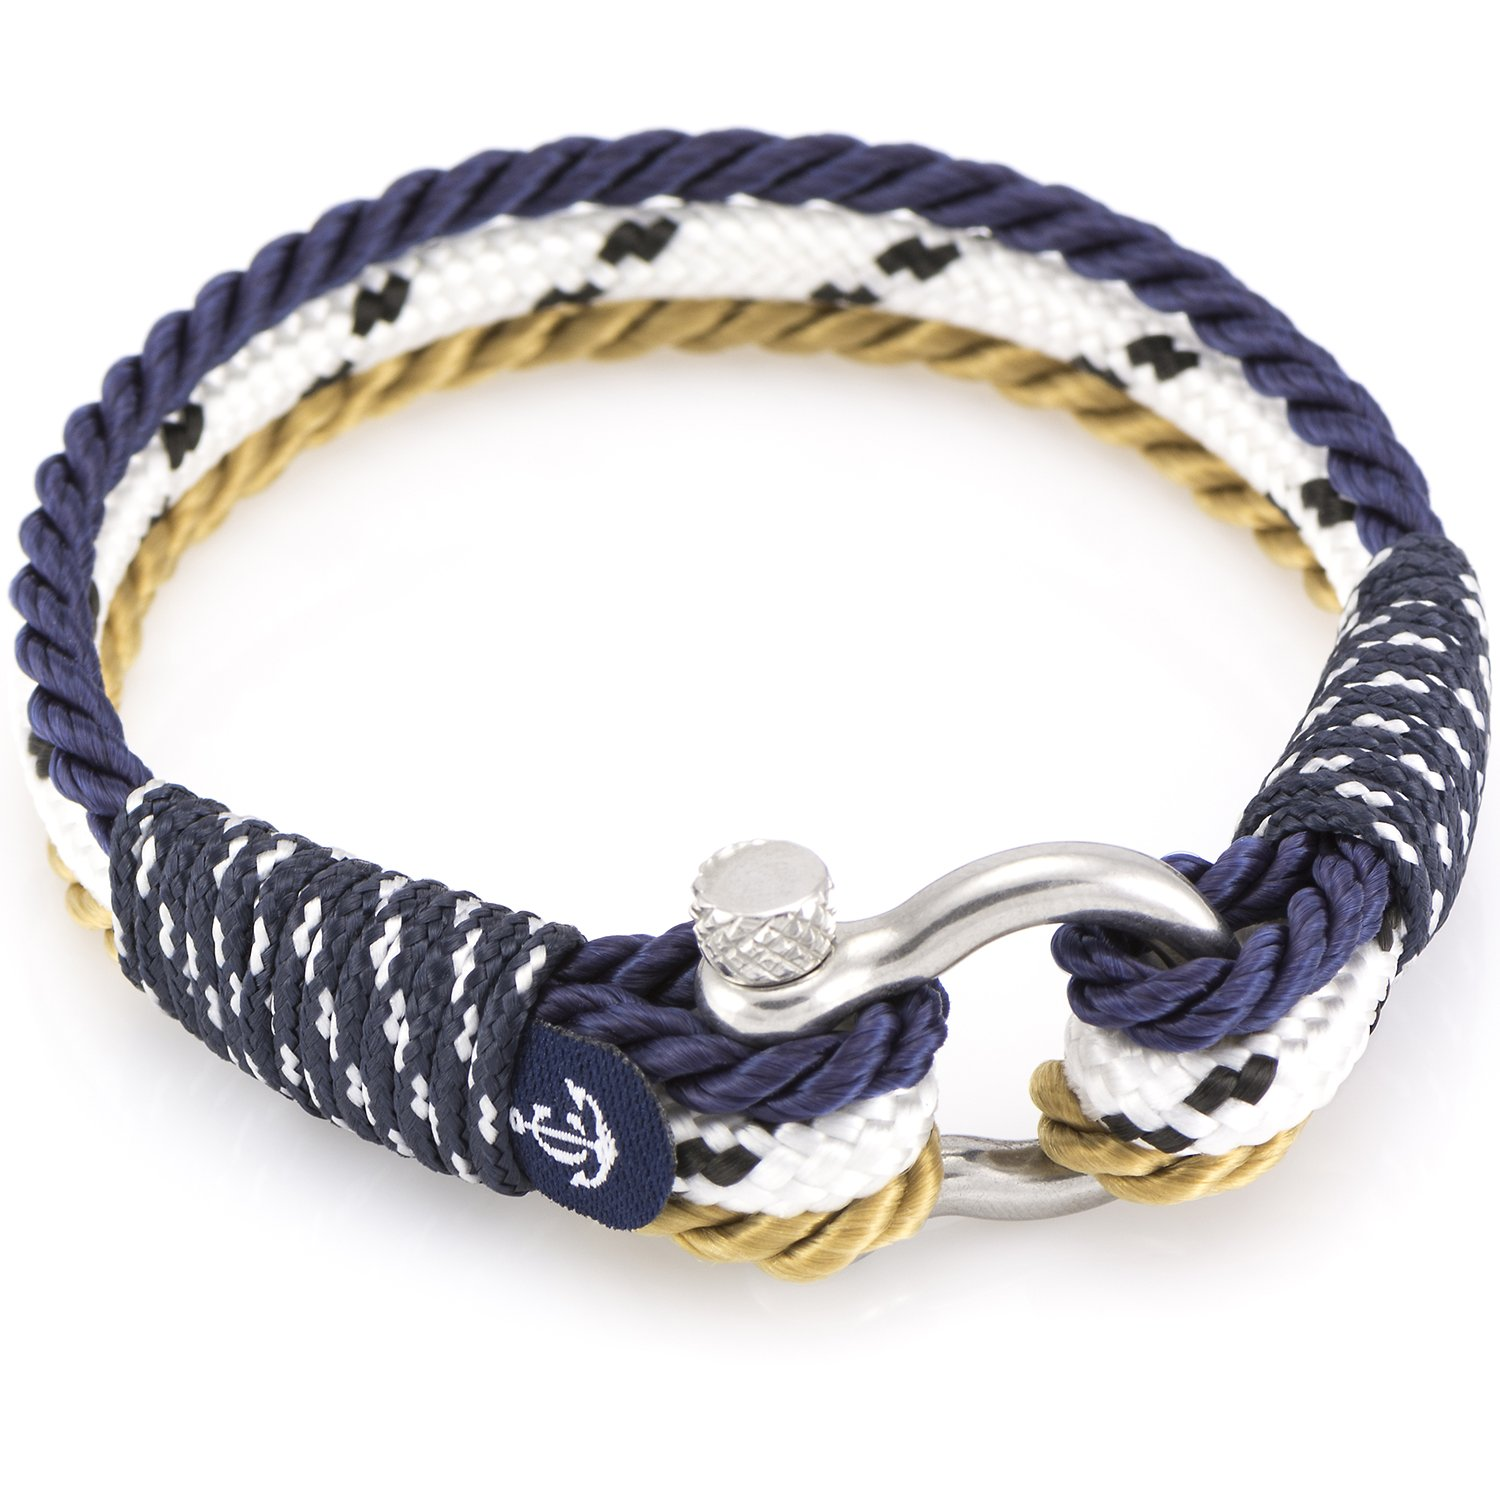 men bracelets rope bracelet womens women segeltau p fullxfull s il mermaid mens seeweib nautical sporty armband spirit